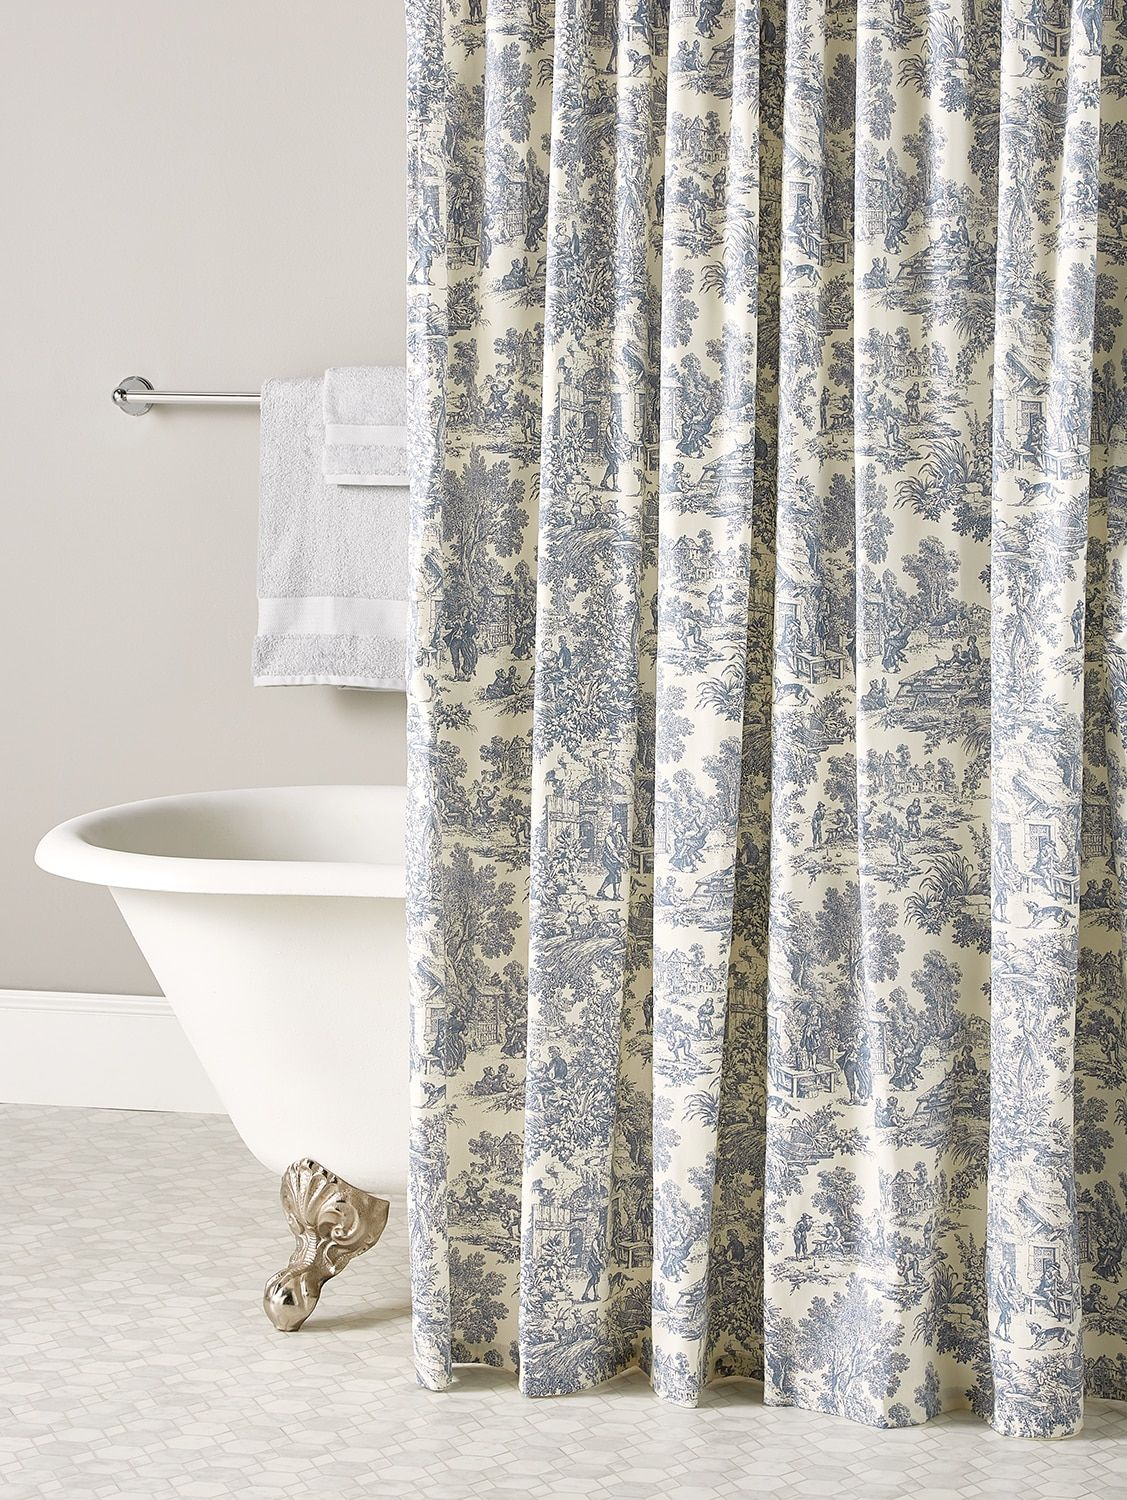 Essex Toile Shower Curtain French Country Bathroom Country Shower Curtain Country House Decor